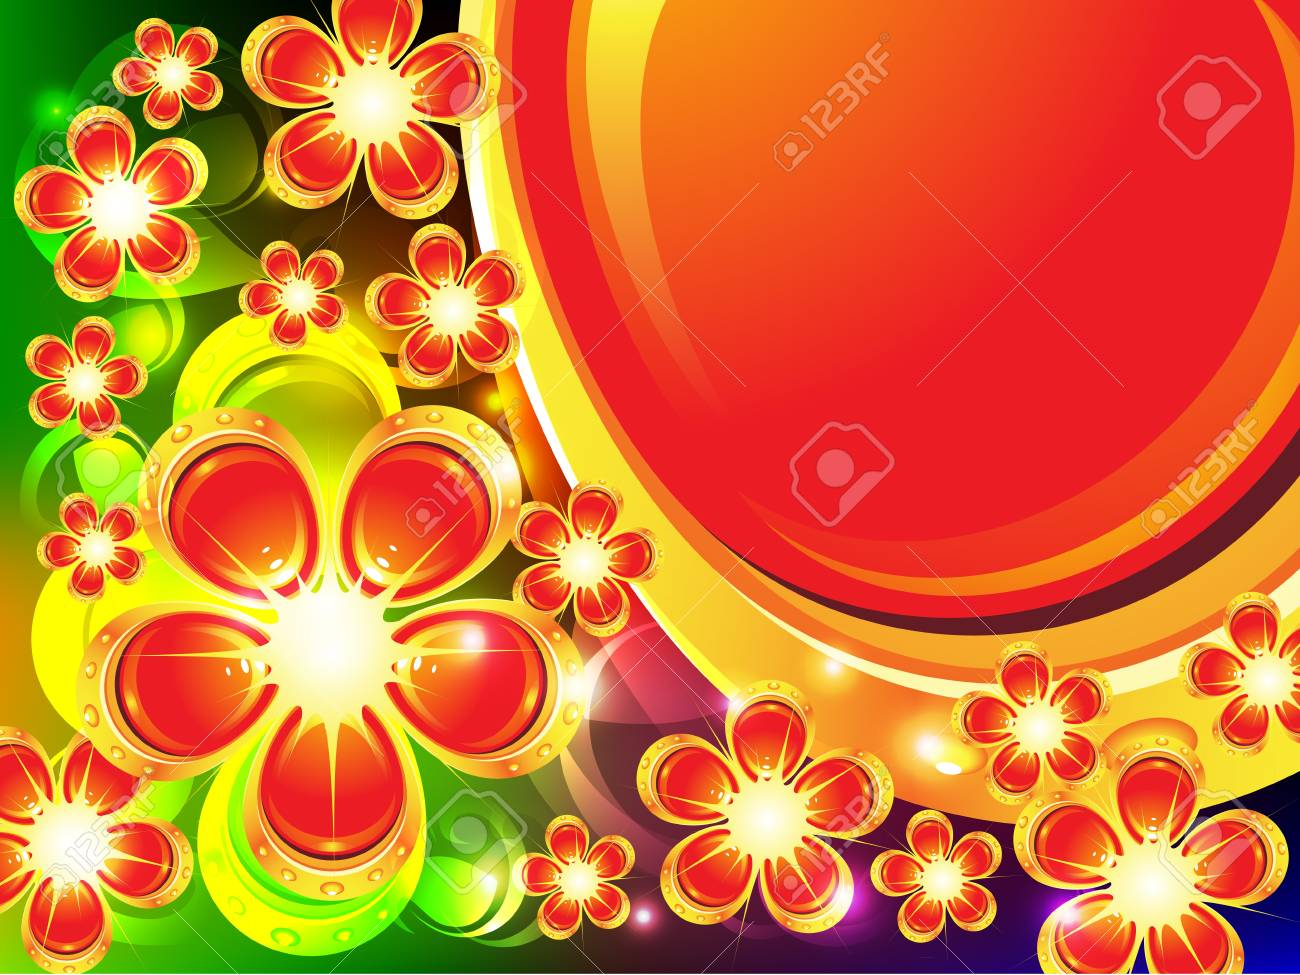 Background with lots of flowers and place for text Stock Vector - 13748395